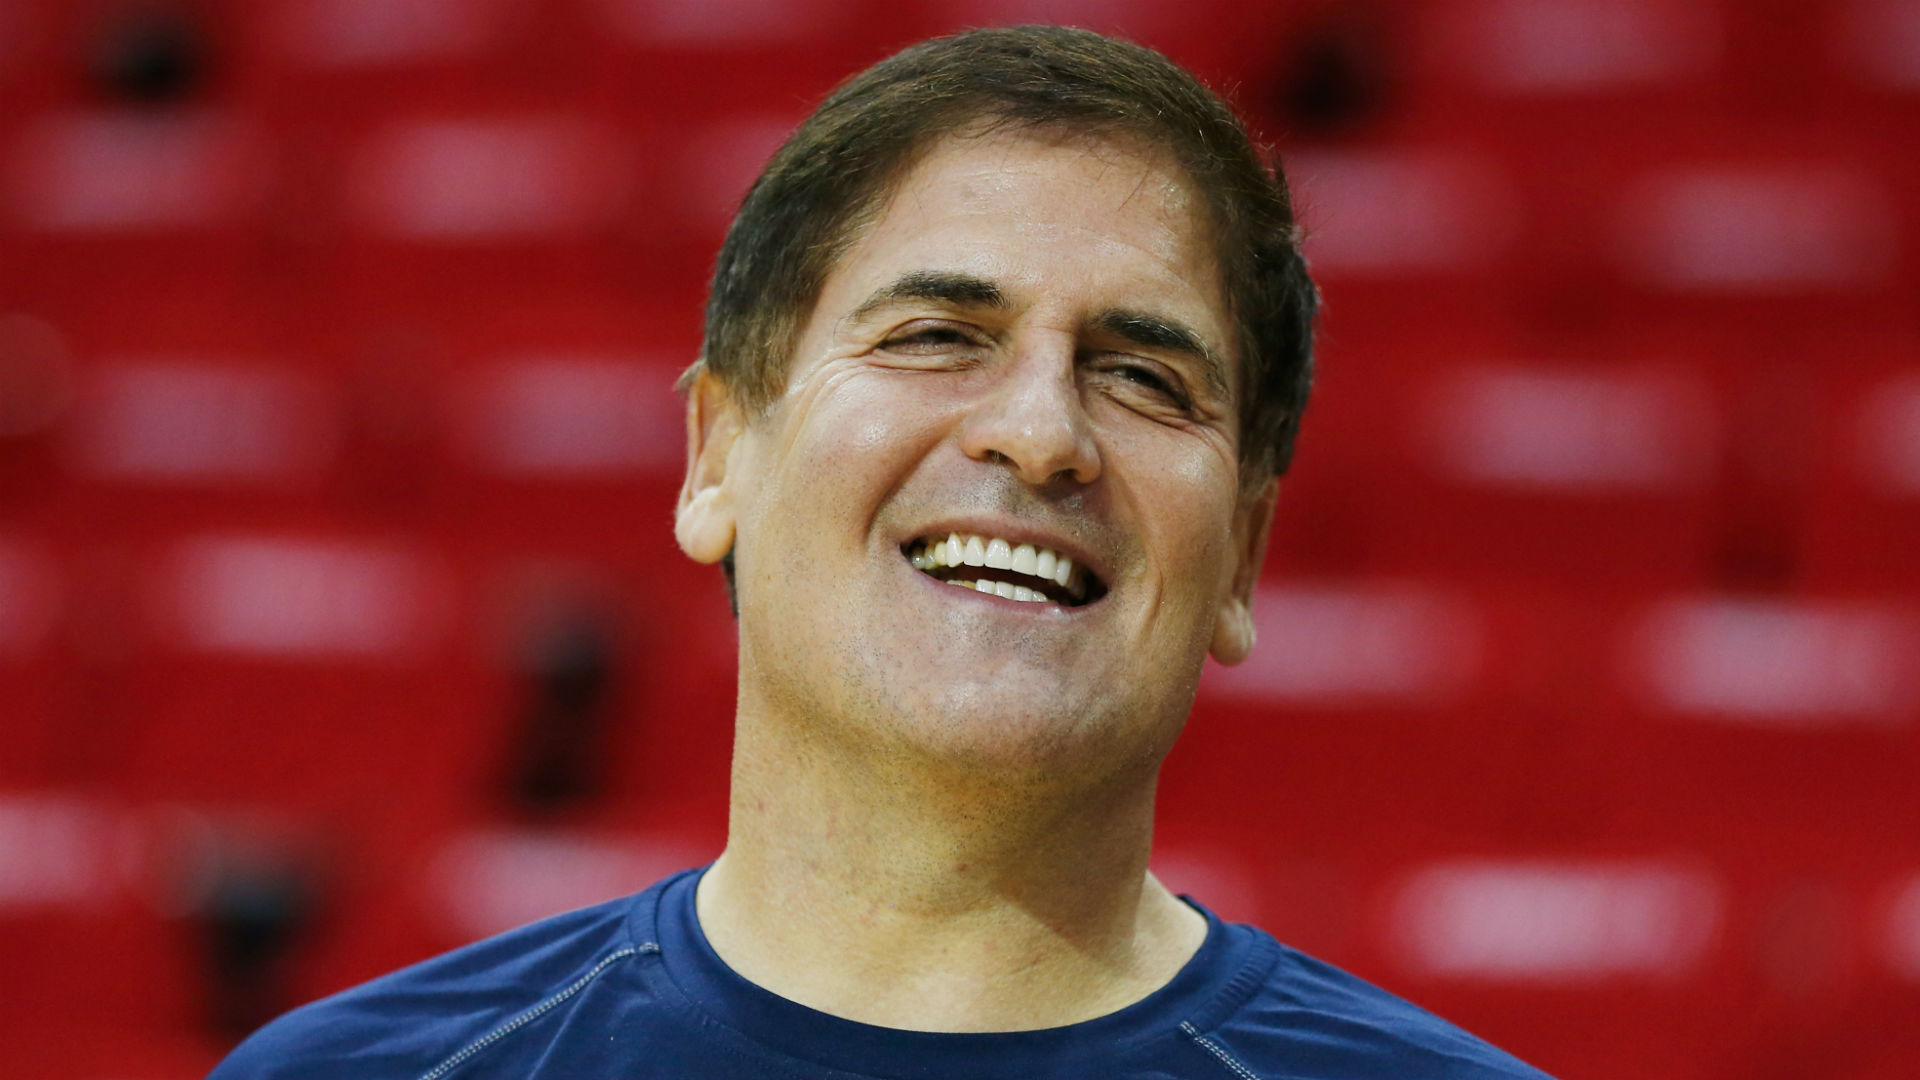 mark-cuban-051715-getty-ftr-us.jpg